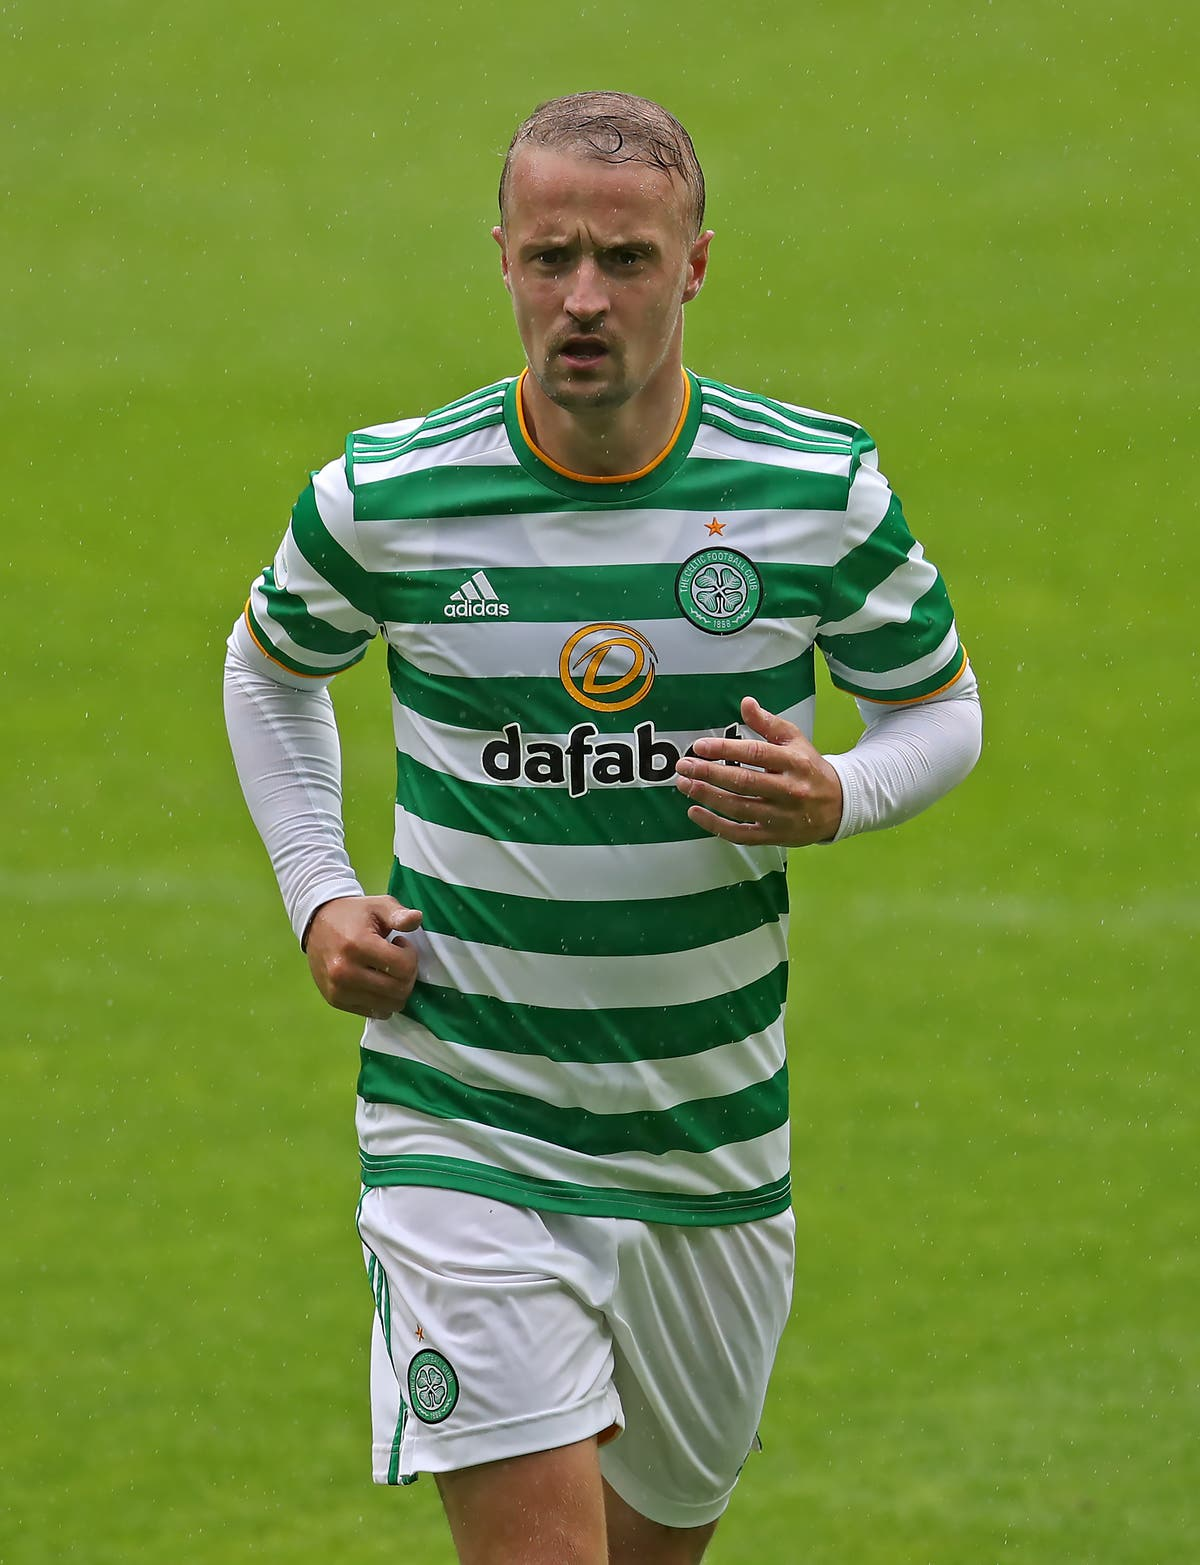 Leigh Griffiths hoping to get his career back on track at Dundee